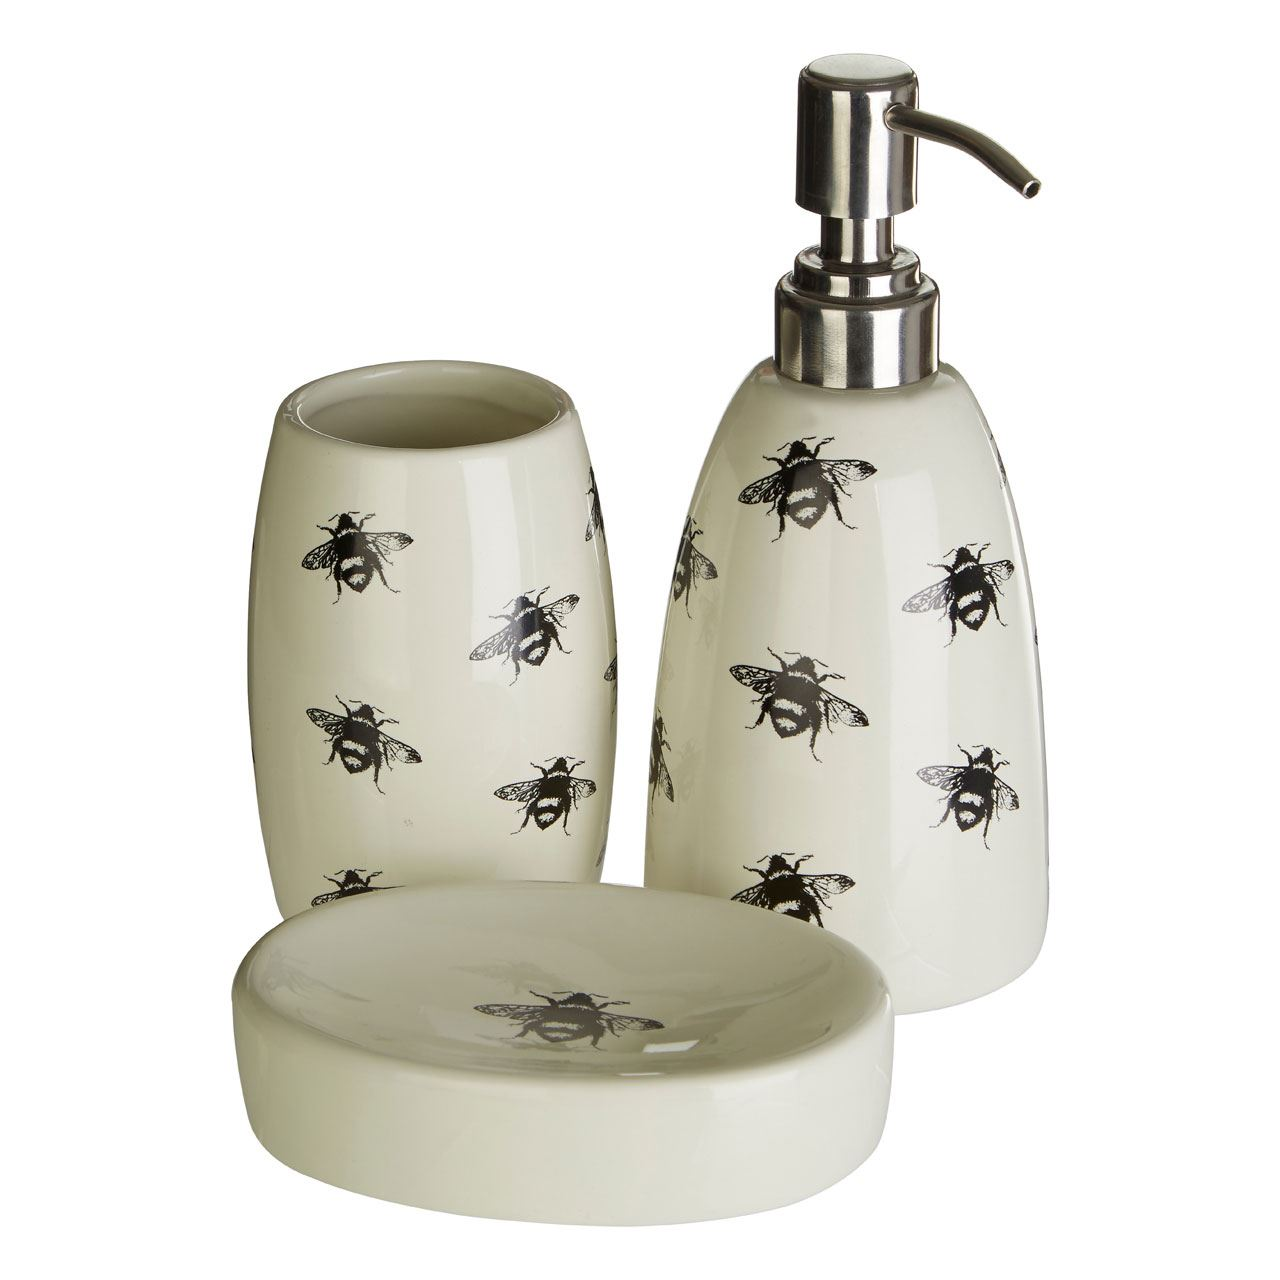 Queen Bee 3pc Bathroom Set Natural Dolomite Tumbler Soap Lotion